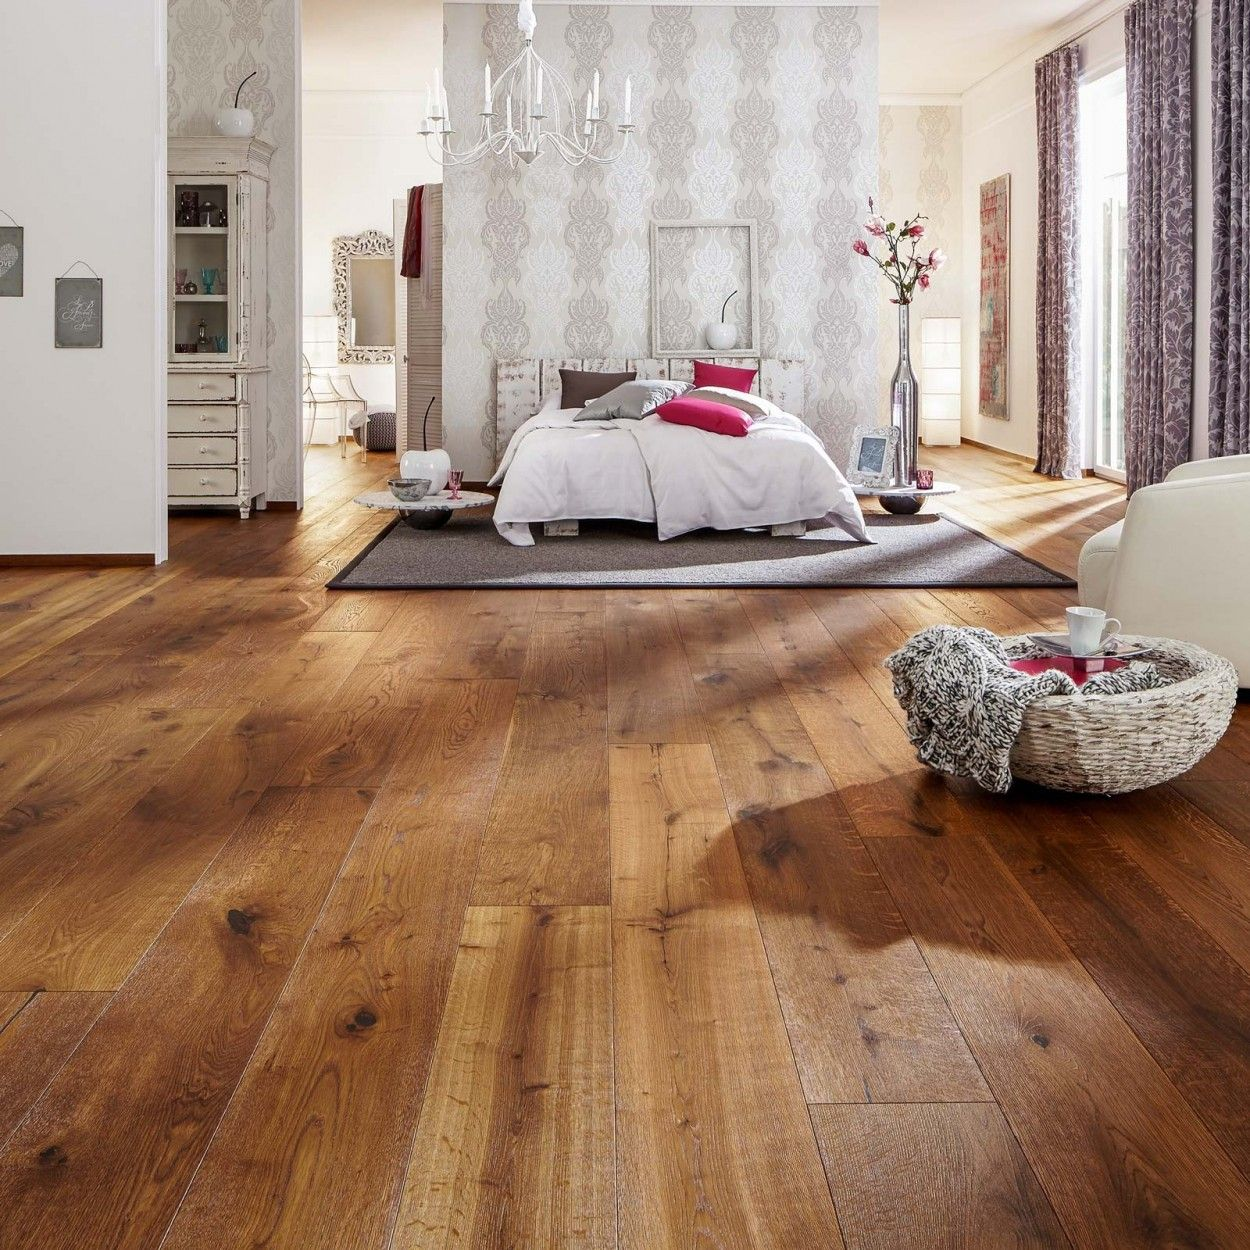 Bedroom Ideas Pintrest Wood Flooring '545 Calgary E7465